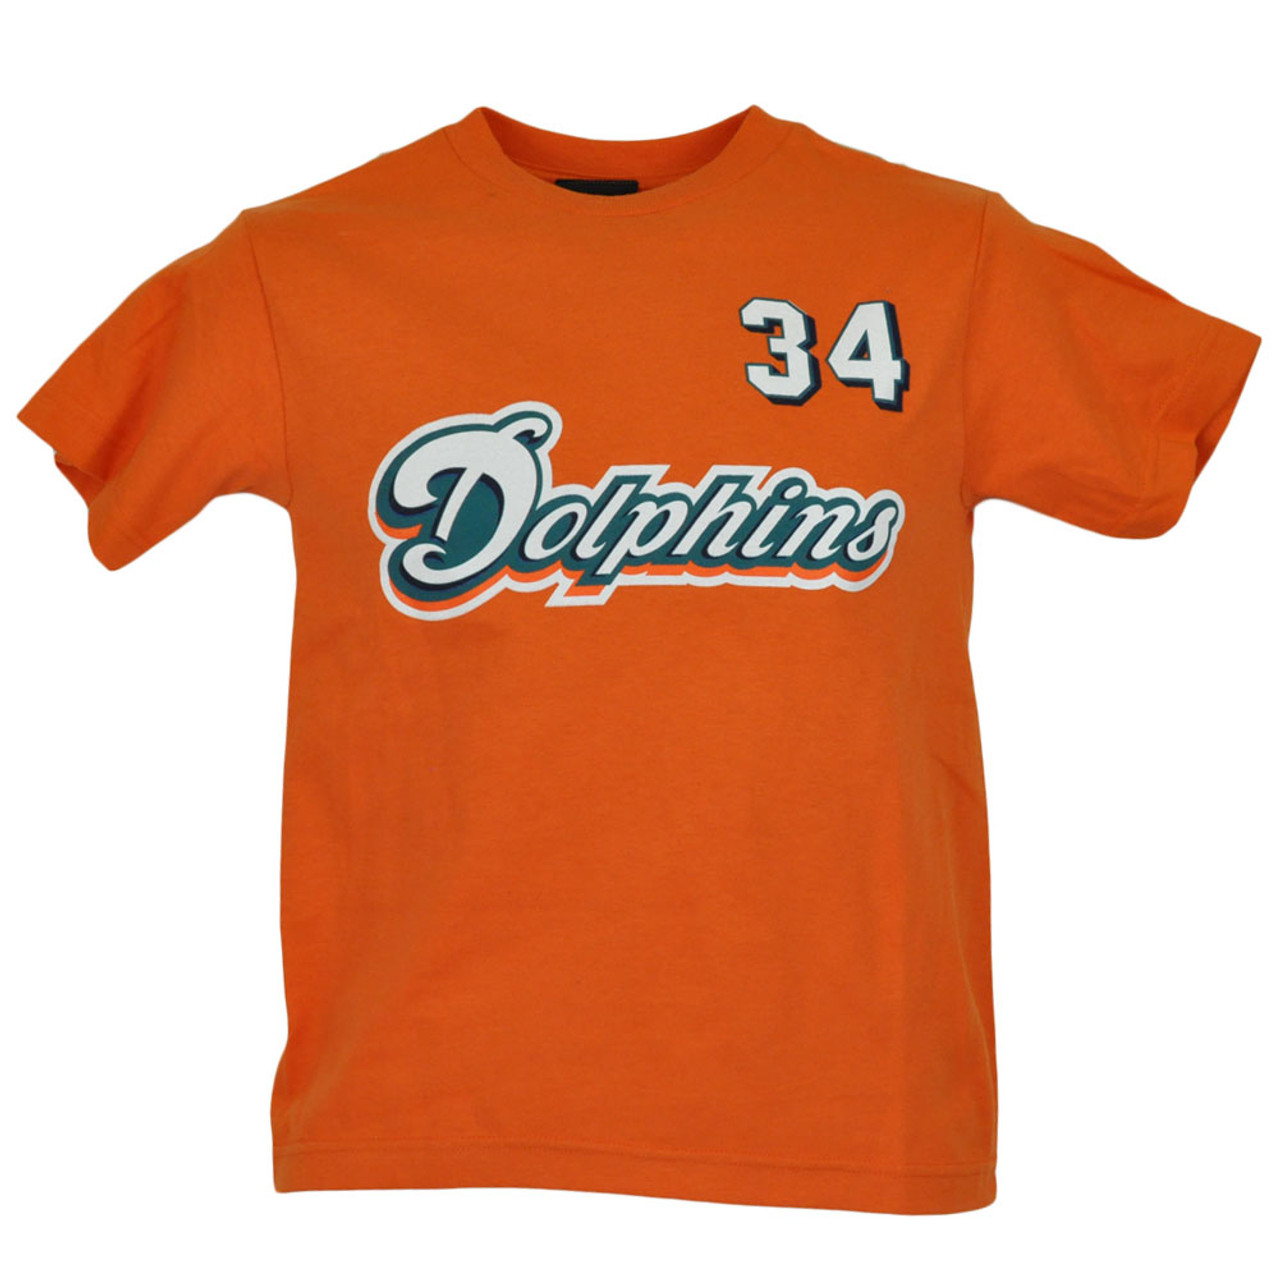 2a629709 NFL Reebok Miami Dolphins Ricky Williams 34 Youth Kids Tshirt Shirt  Licensed Tee